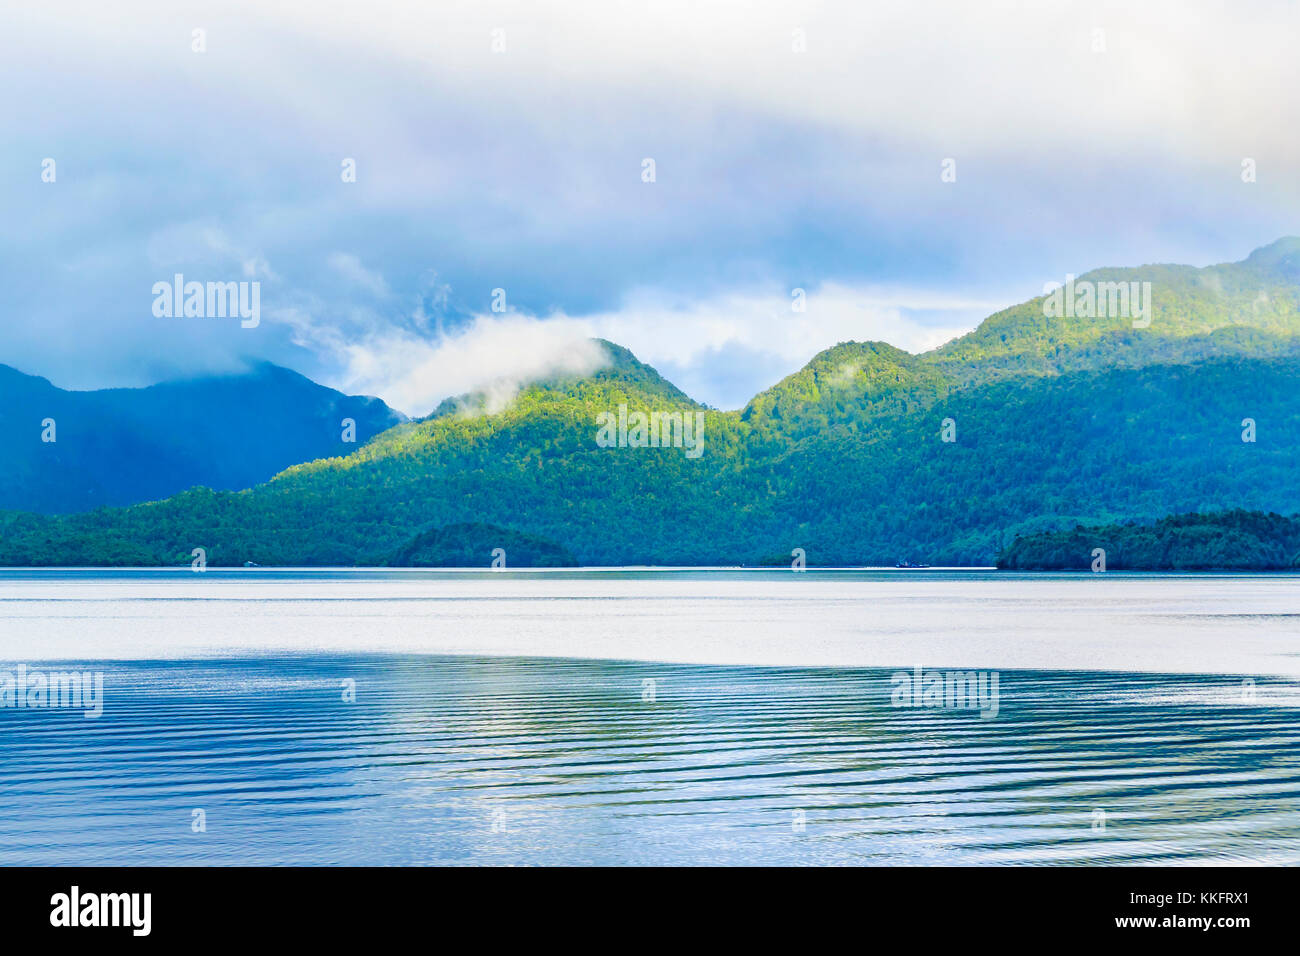 Fjord landscape at puyuhuapi town, patagonia, Chile - Stock Image